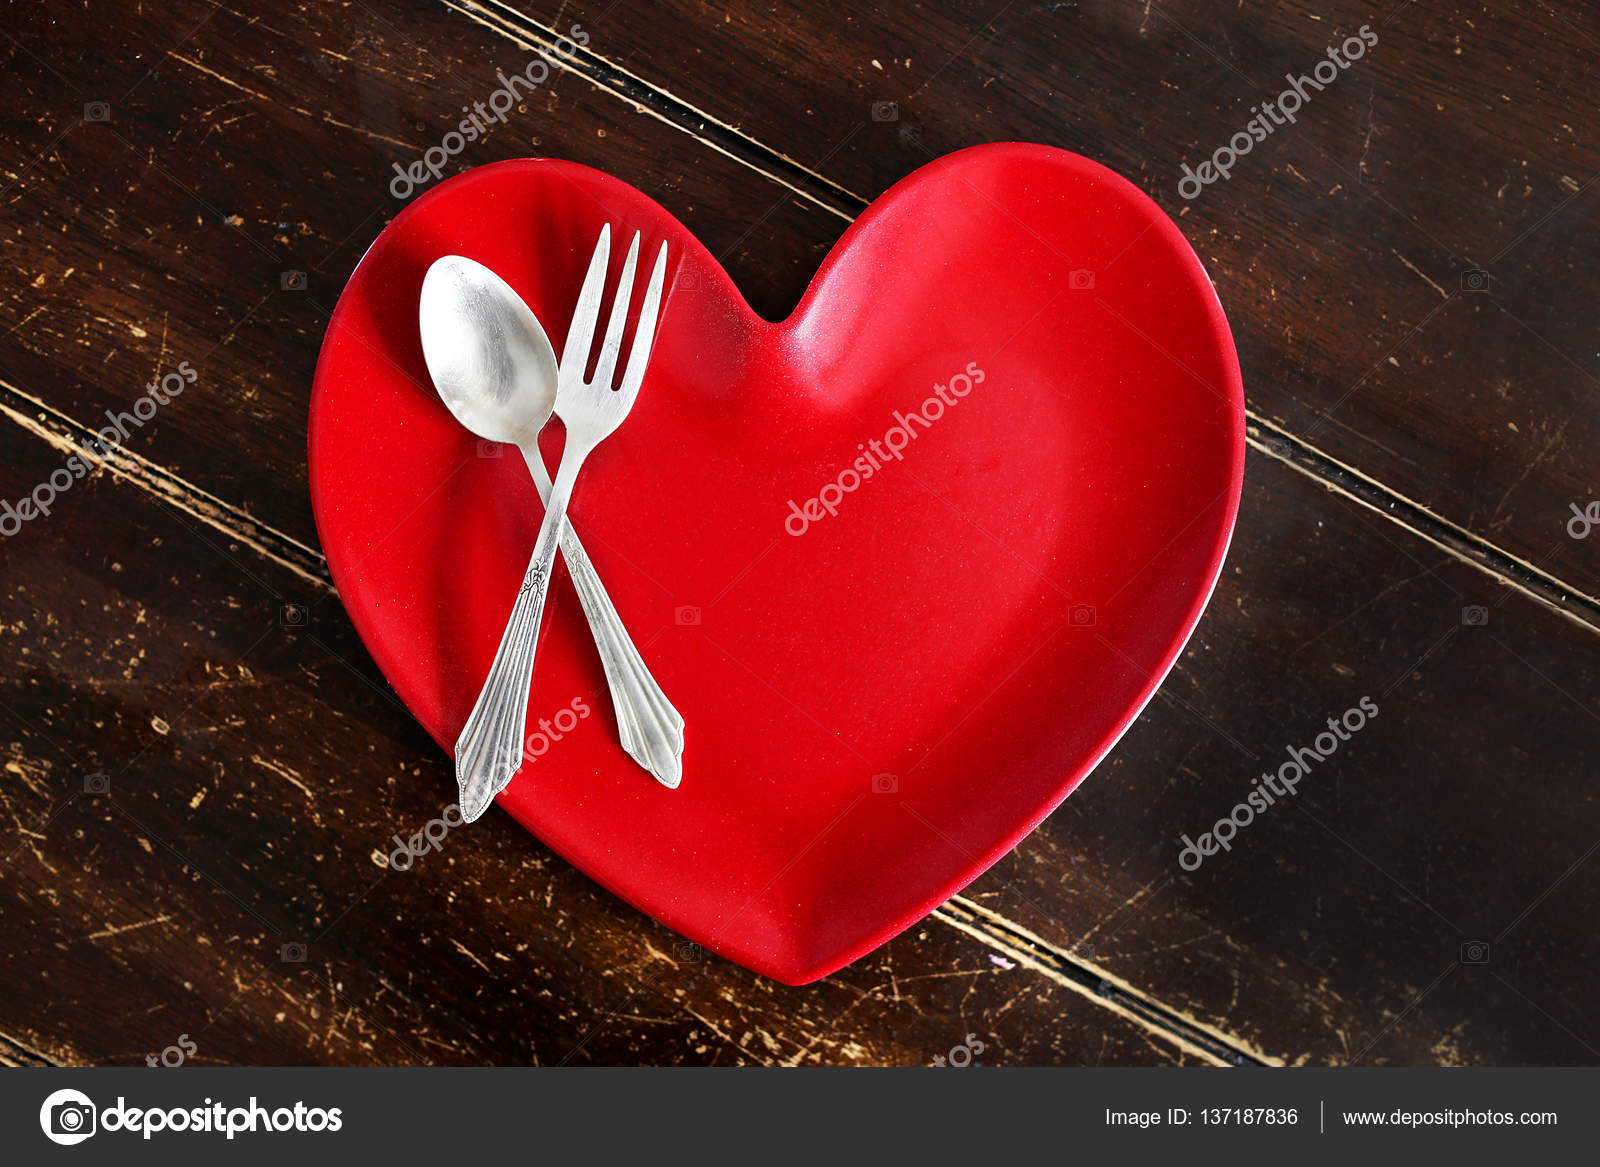 An empty red heart shaped dinner plate with a silver spoon and fork is sitting on an old worn out wood planked table. u2014 Photo by Christin_Lola & Heart Shaped Dinner Plate with Fork and Spoon on Worn Wood Table ...